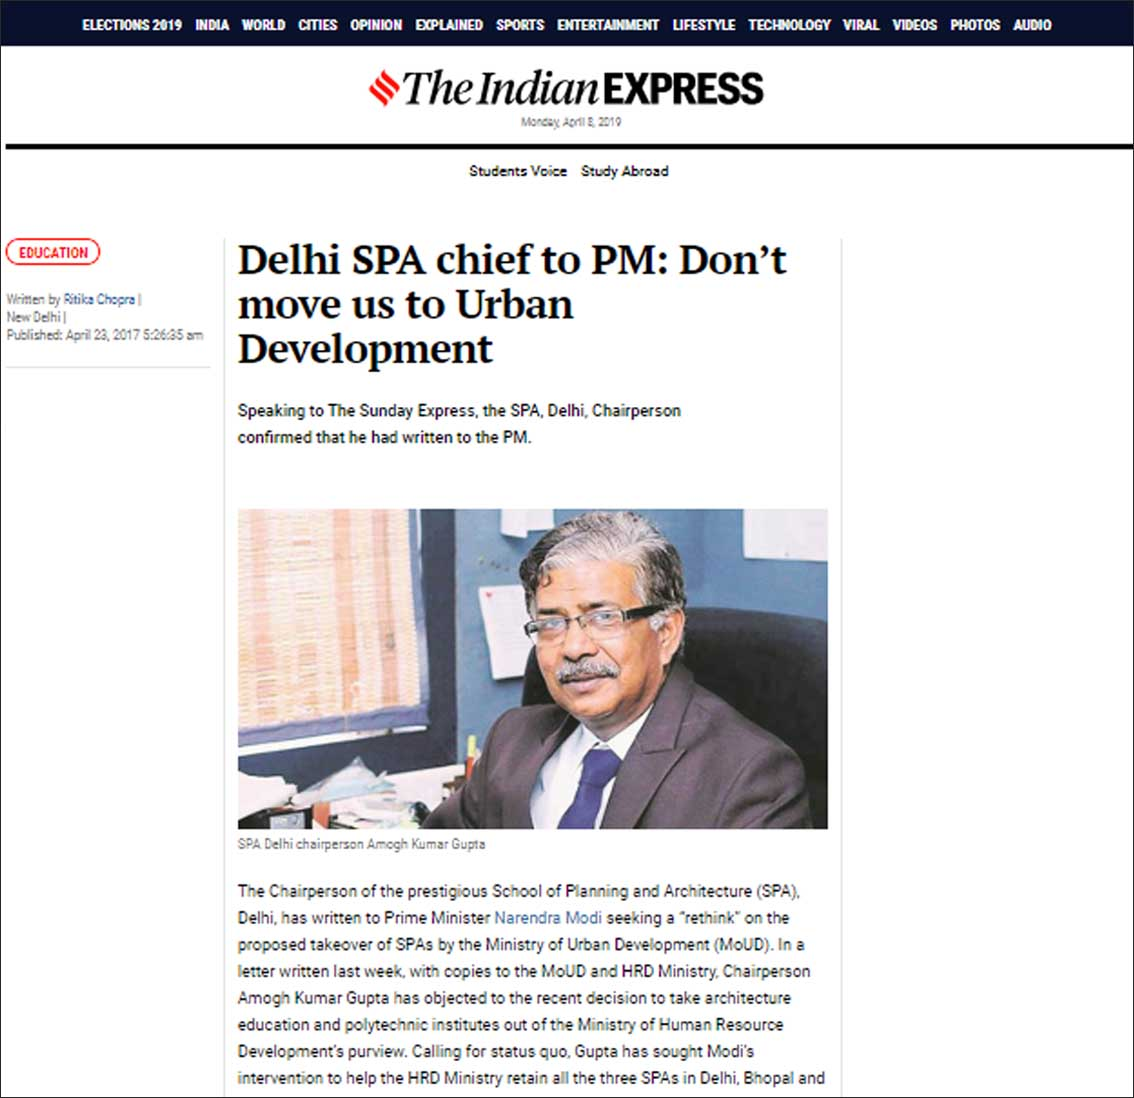 Delhi SPA chief to PM: Don't Move us to Urban Development,The Indian ExPress - April 2017�